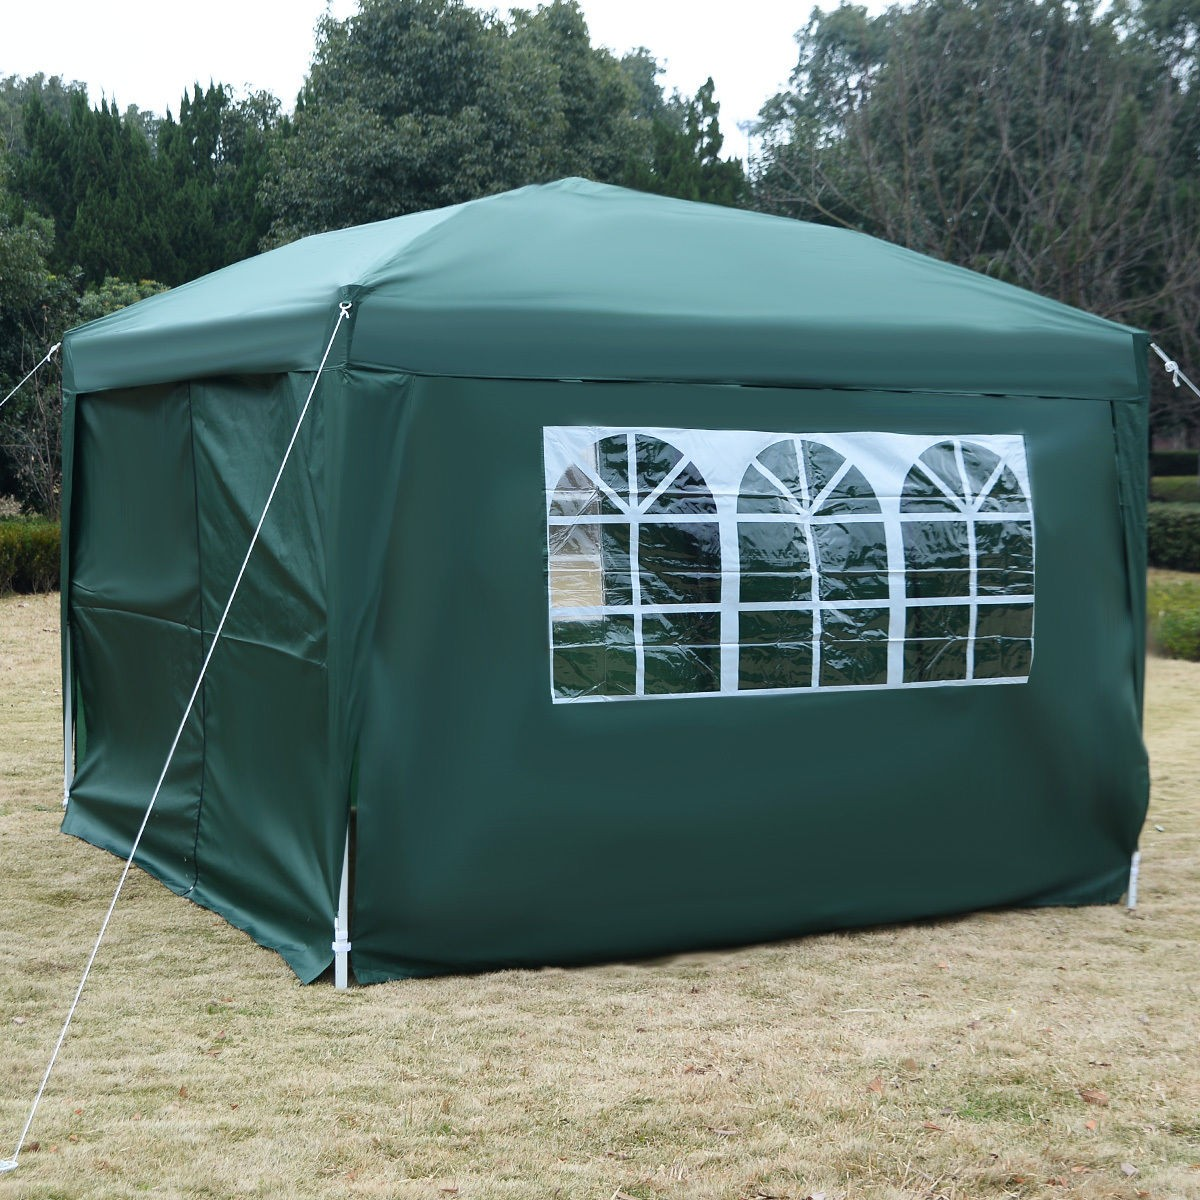 10 x 10 EZ Pop Up Tent Canopy Green 2 & 10 x 10 EZ Pop Up Tent Canopy Gazebo